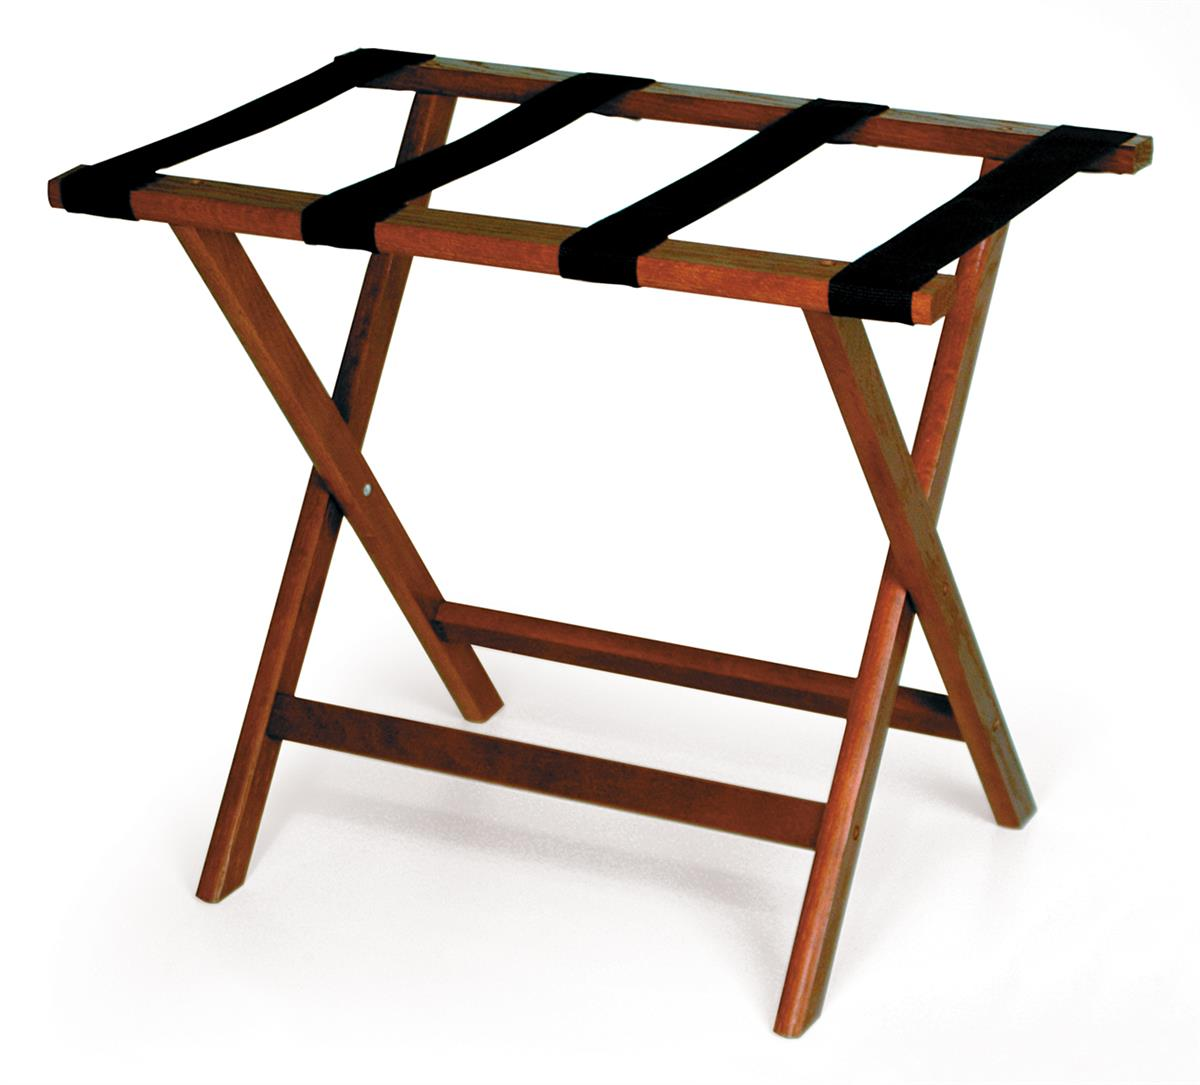 Image of: Wooden Luggage Rack Red Mahogany W Black Straps